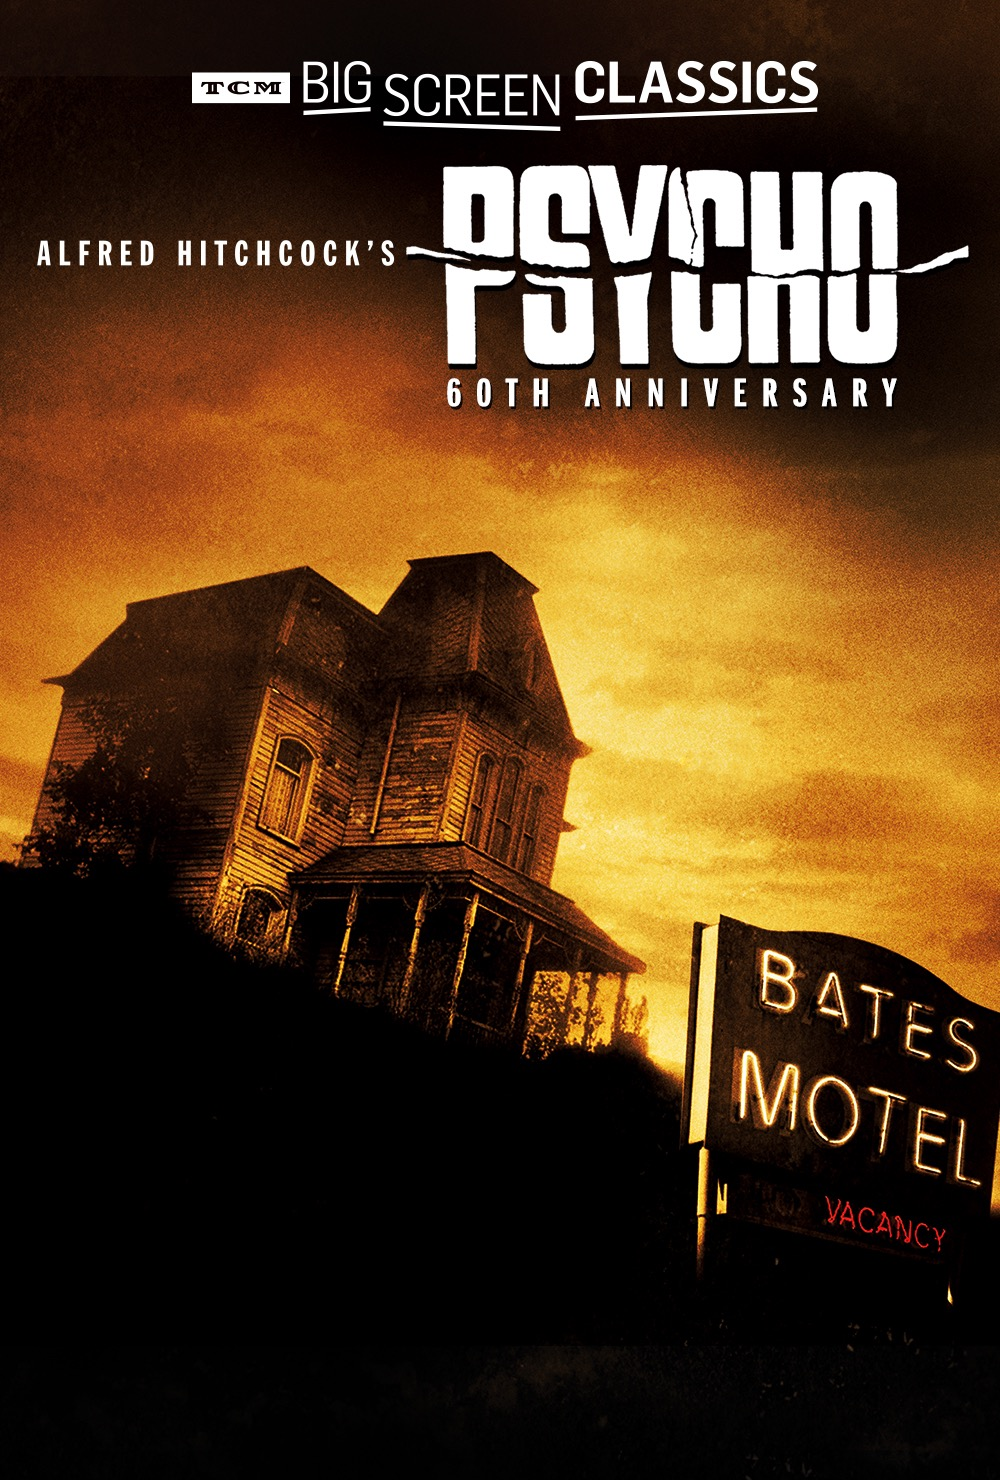 Psycho (1960) 60th Anniversary presented by TCM